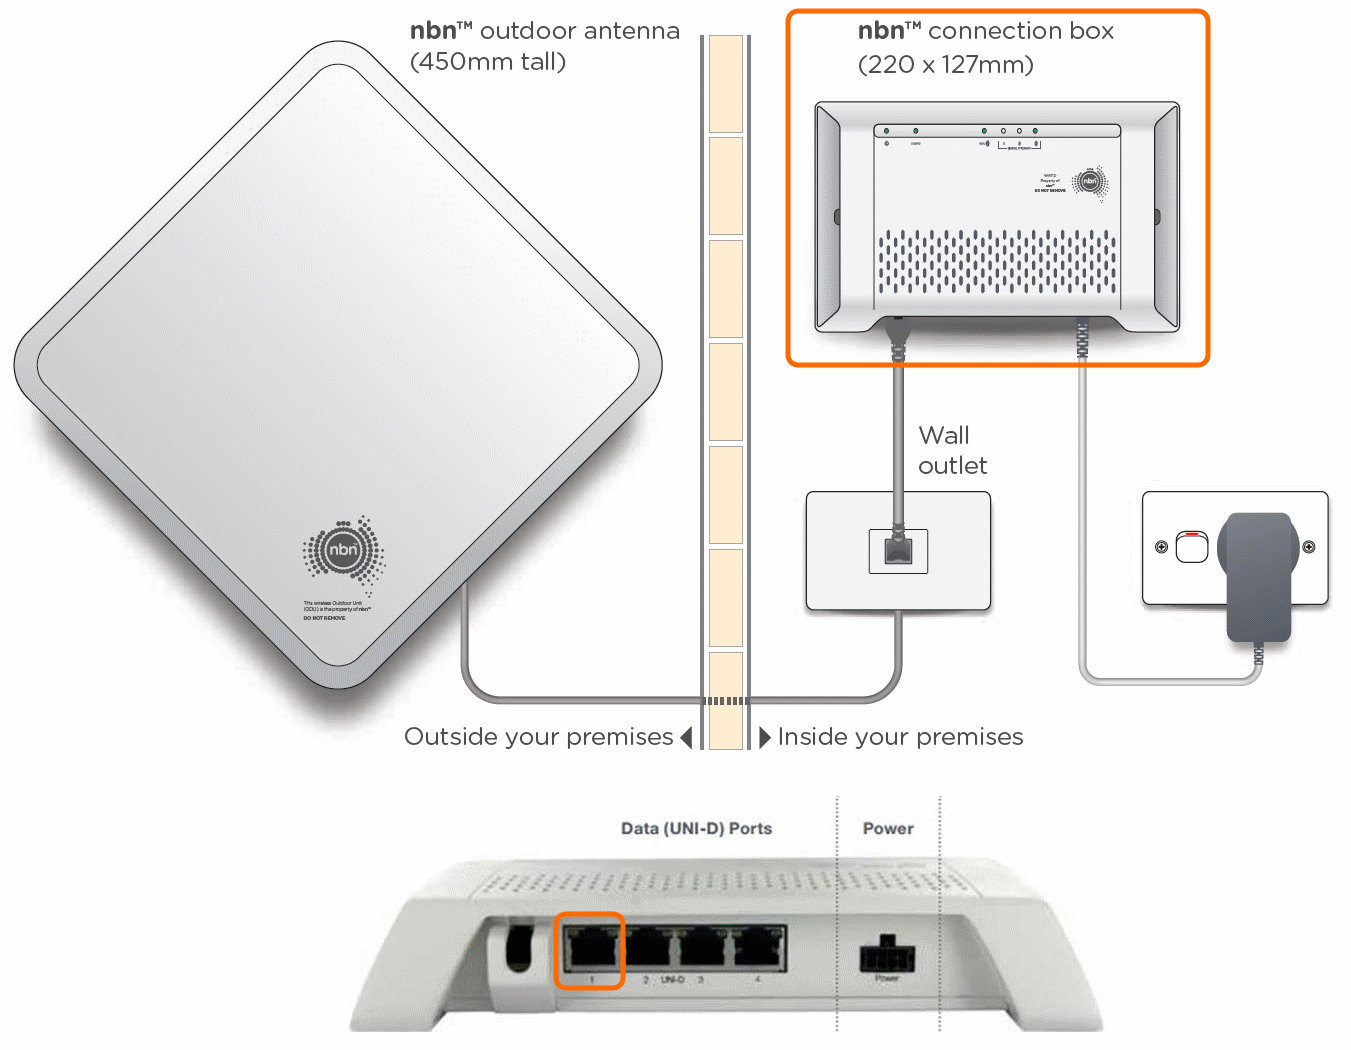 wifi repeater setup instructions for nbn foxtel